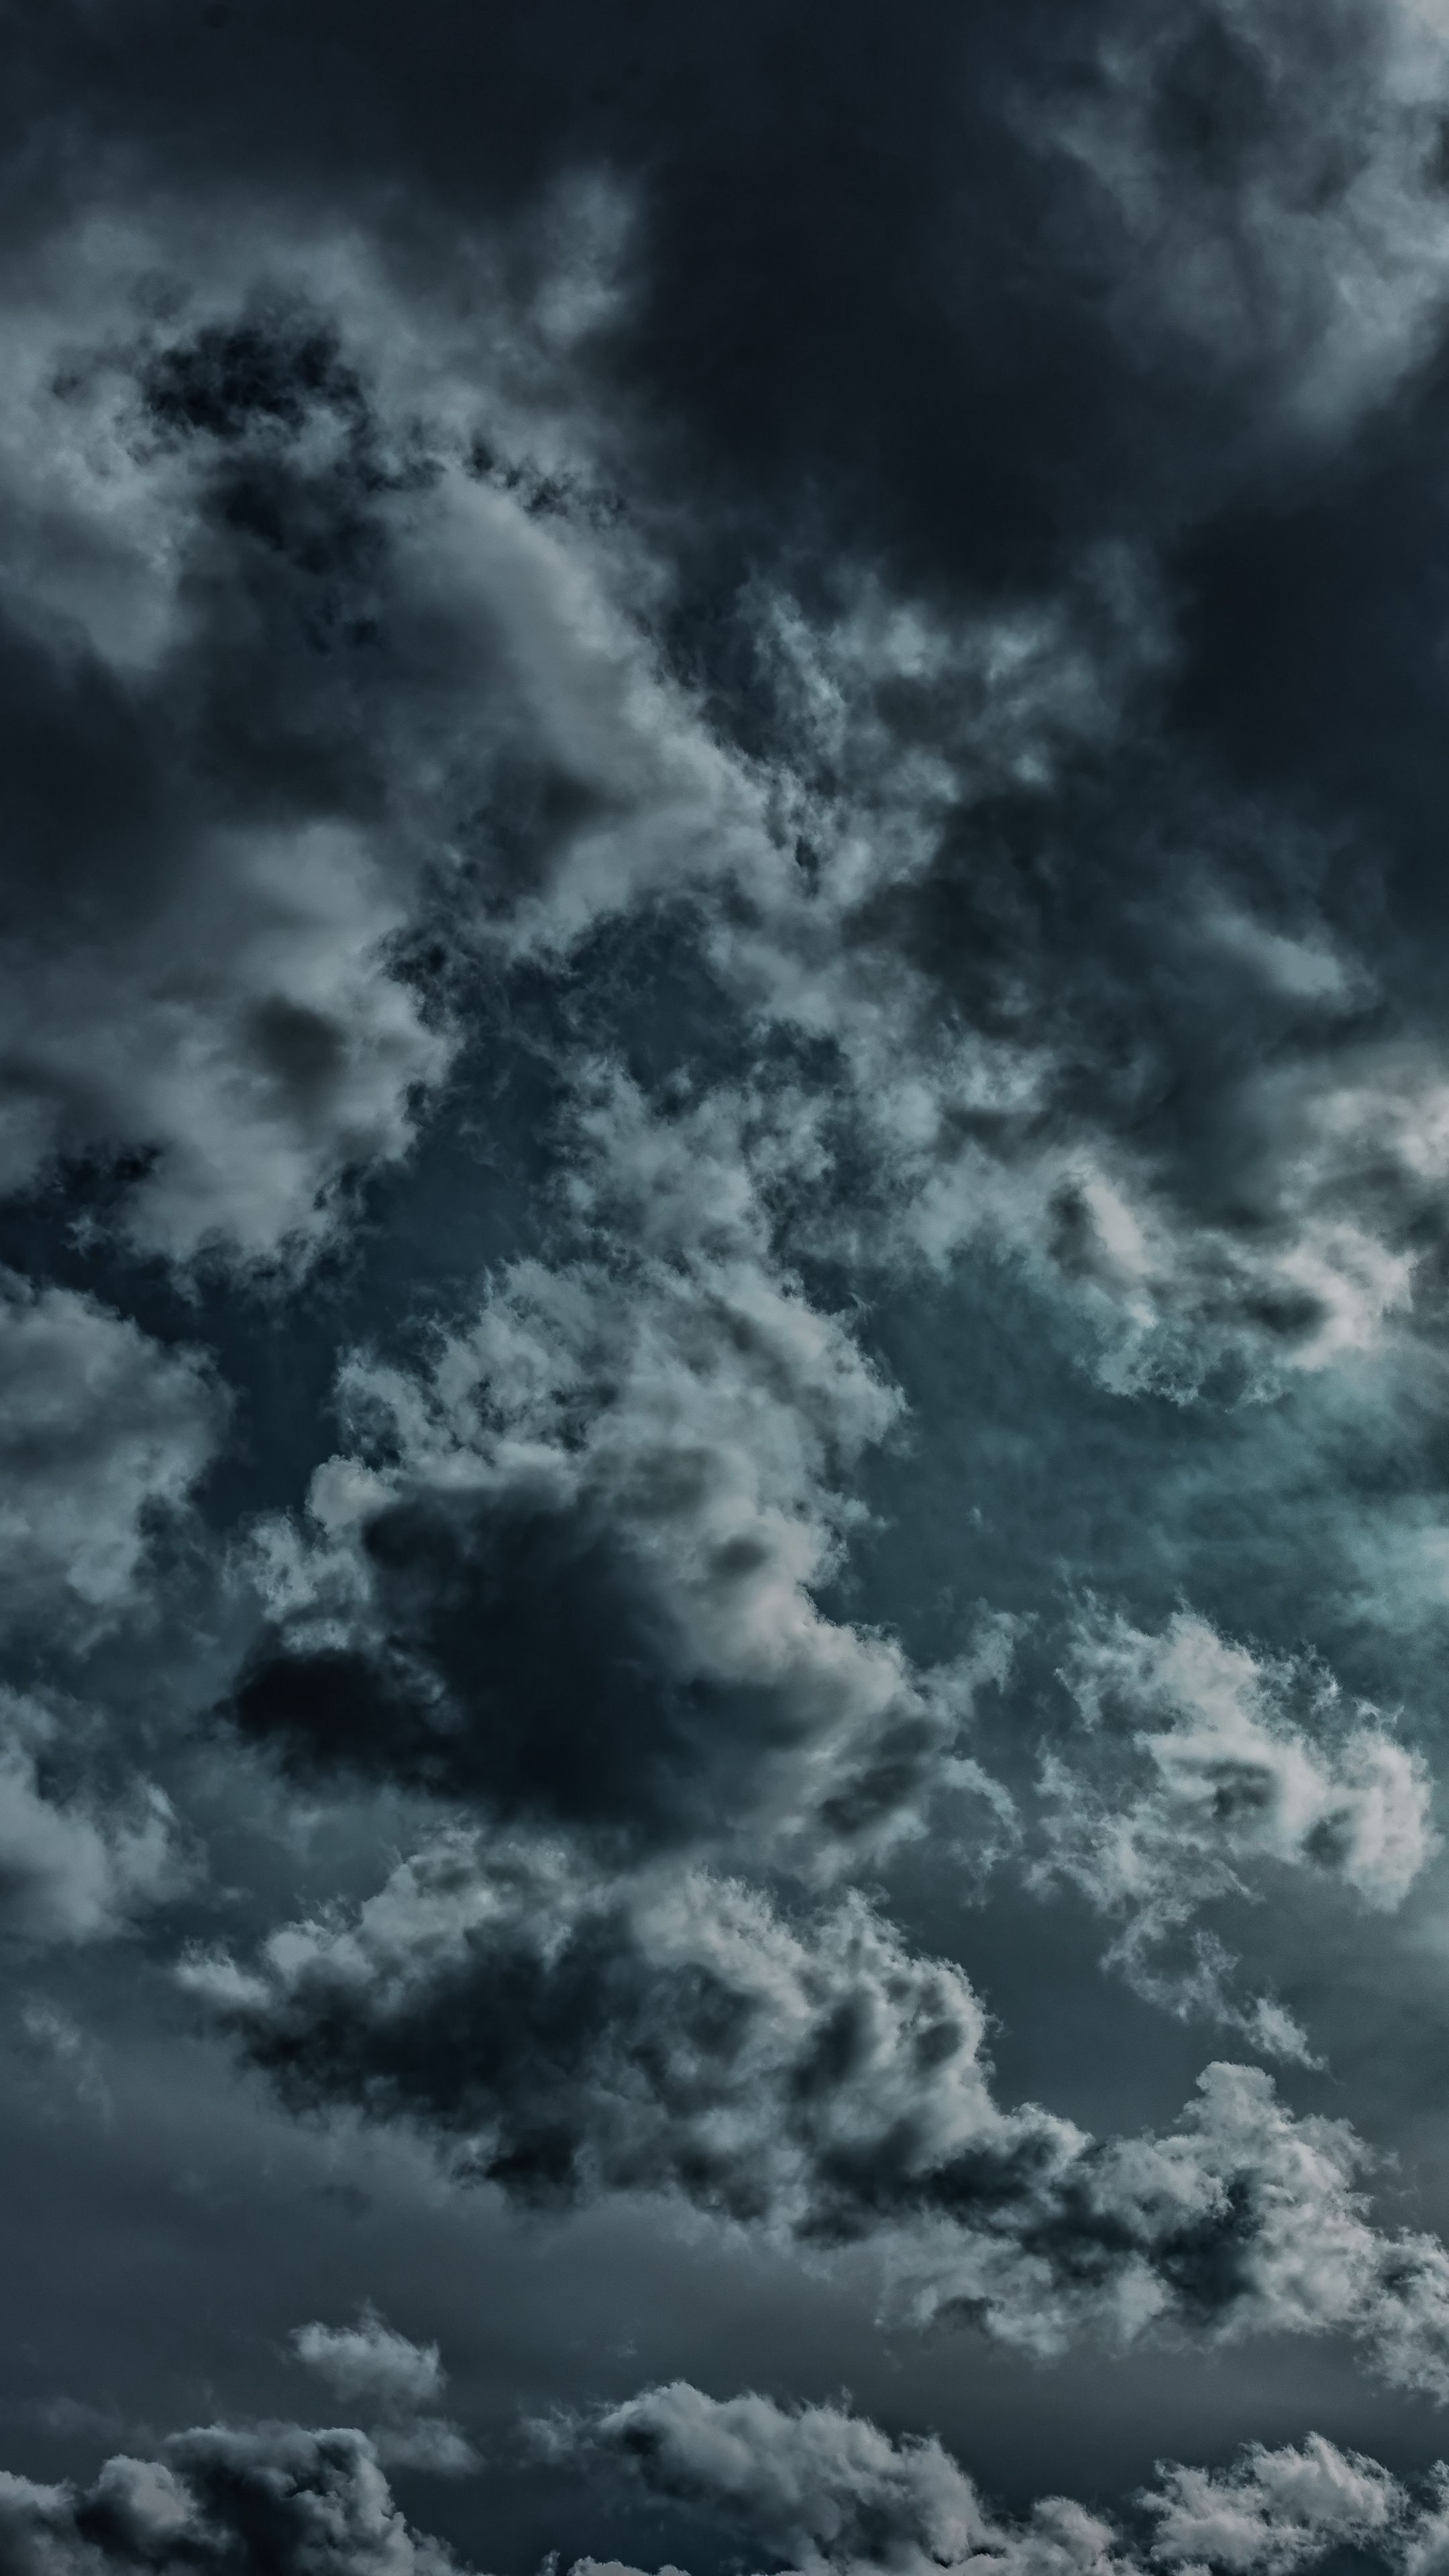 Sky Clouds Sky Cloudy Wallpapers Hd 4k Background For Android Clouds Cloud Illustration Cloudy